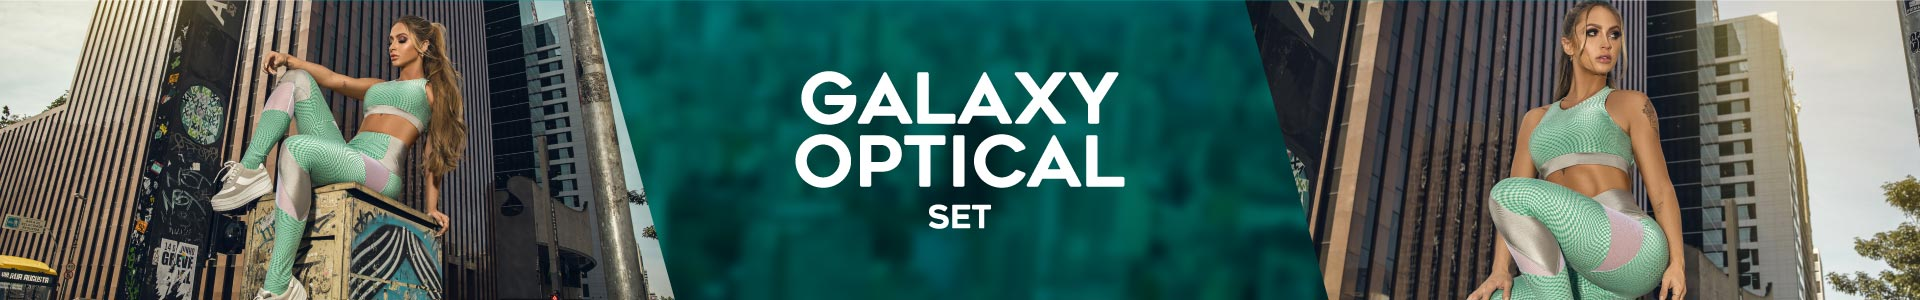 Galaxy Optical